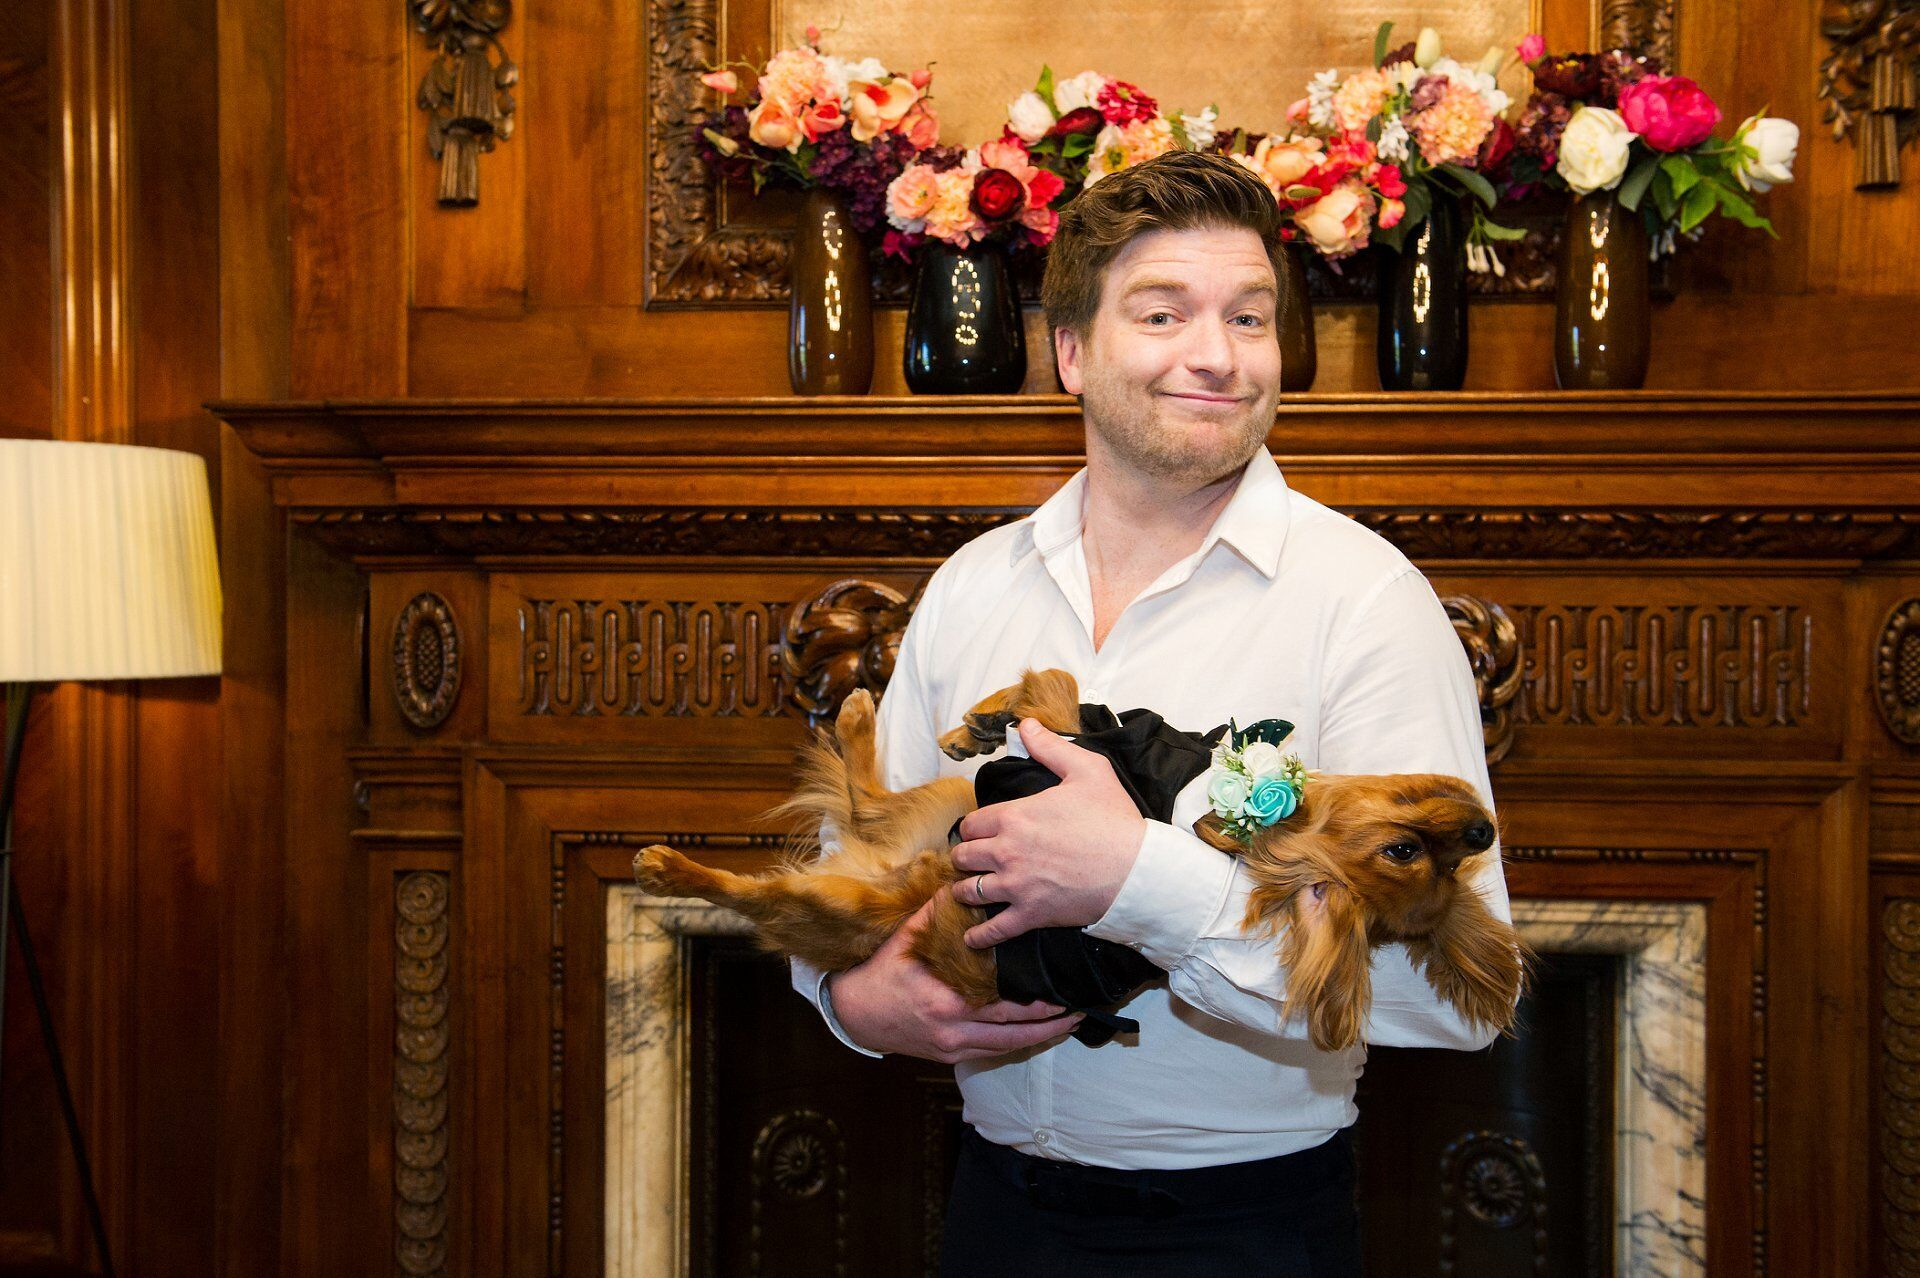 guest with cavalier king charles spaniel puppy at this dog friendly wedding venue in london - marylebone room wedding photography at old marylebone town hall